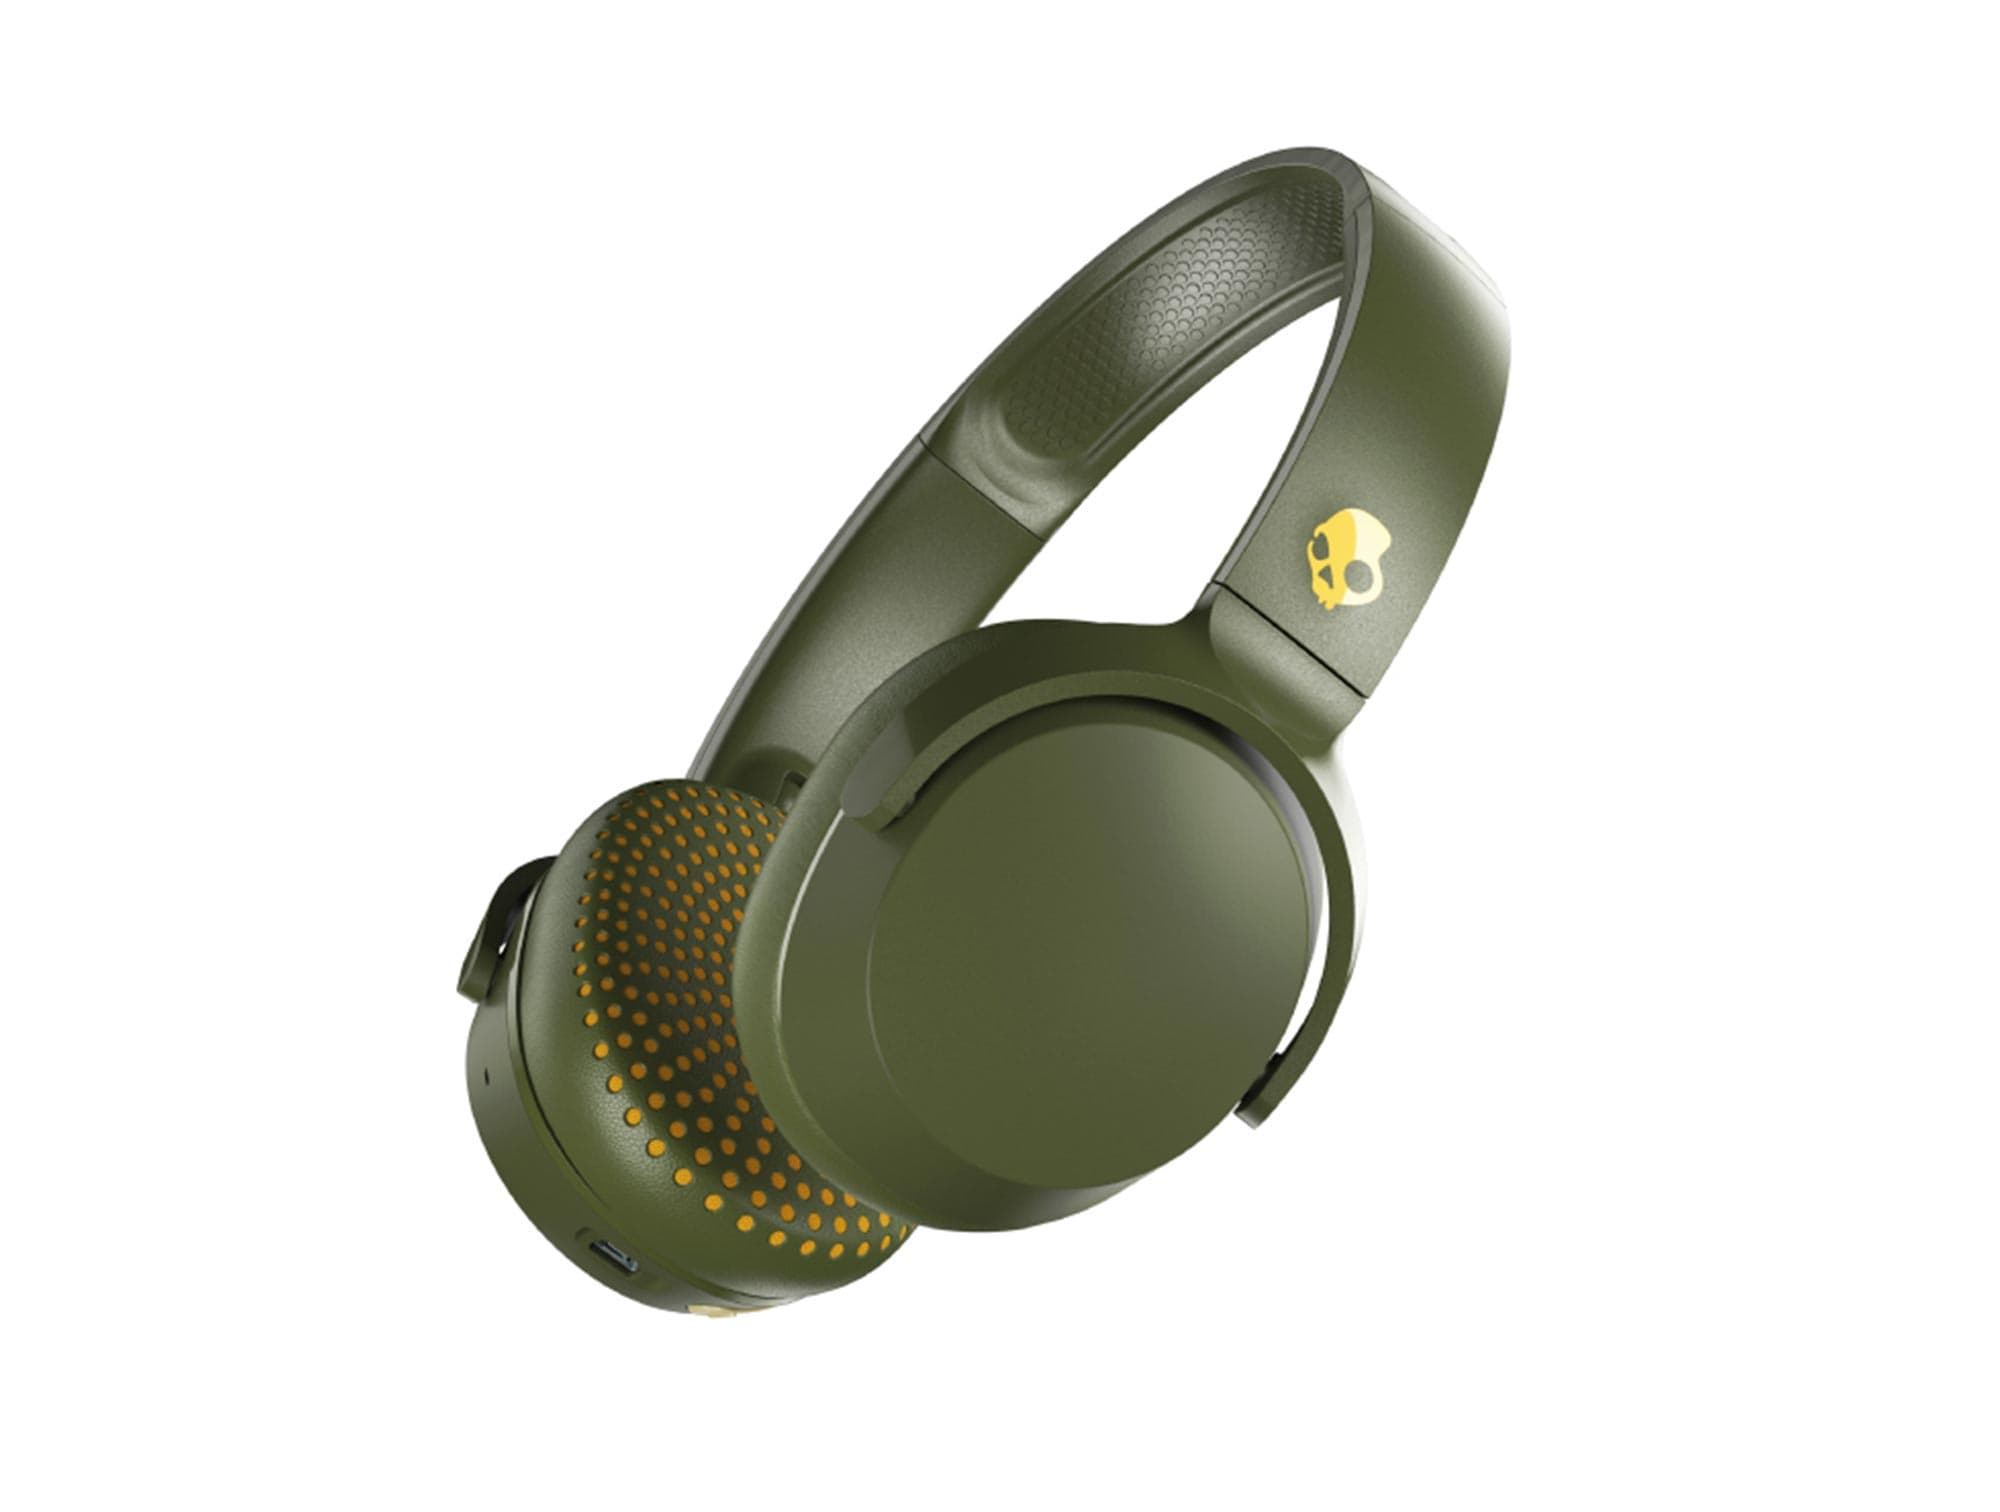 Audifonos Skullcandy Riff Wireless On-Ear Hombre Verde